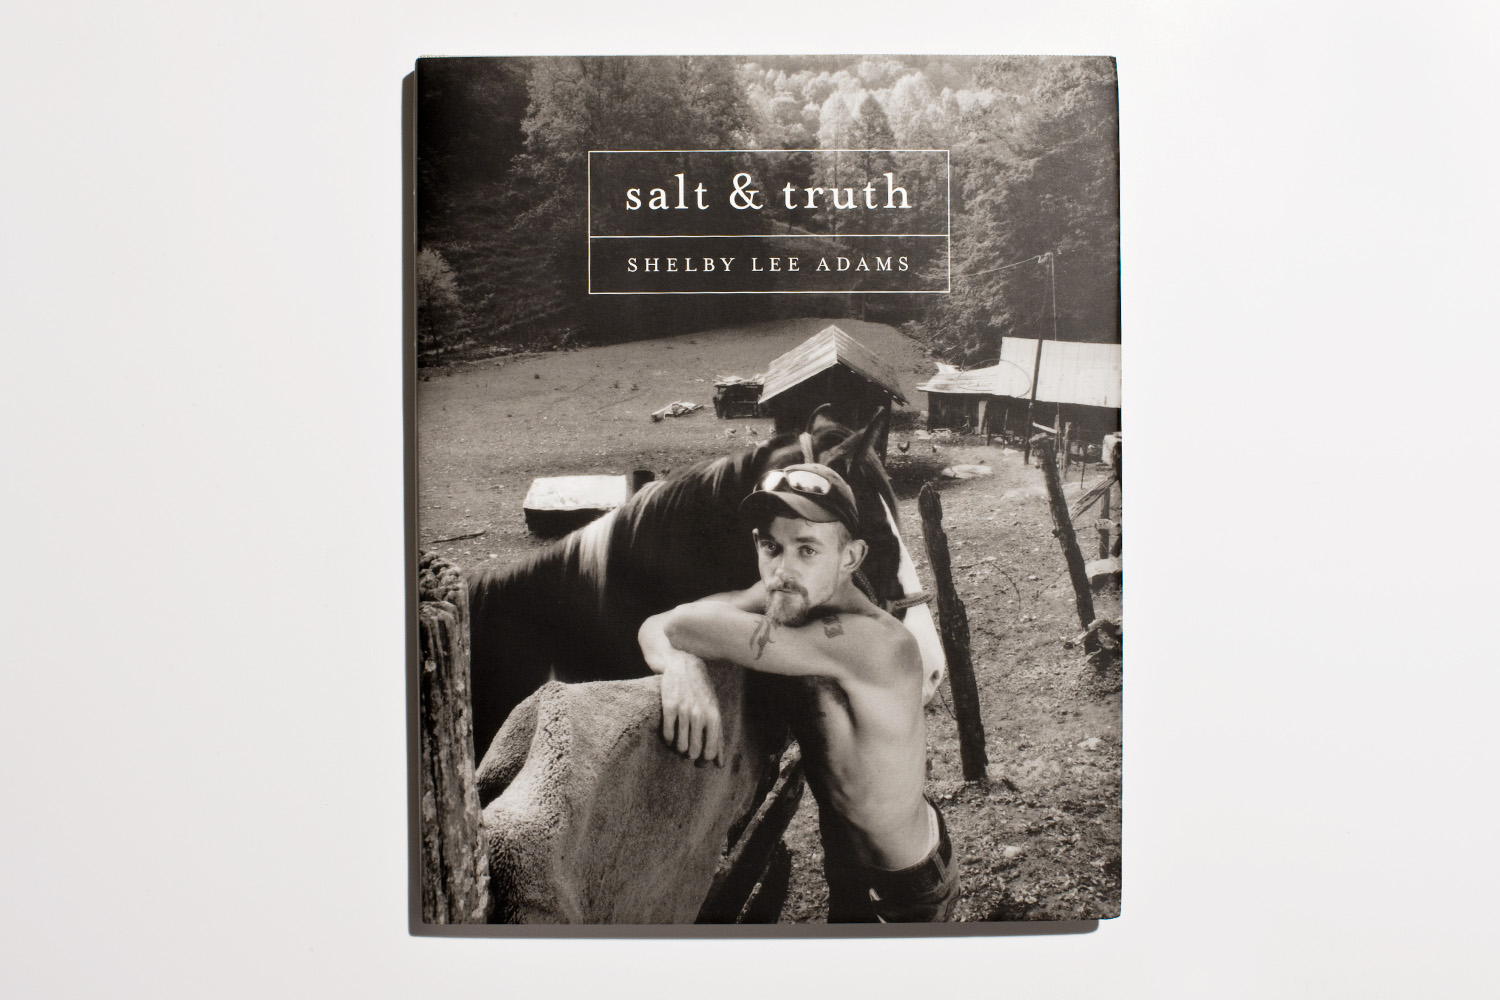 Salt and Truth by Shelby Lee Adams, selected by David Walker, executive editor, Photo District News